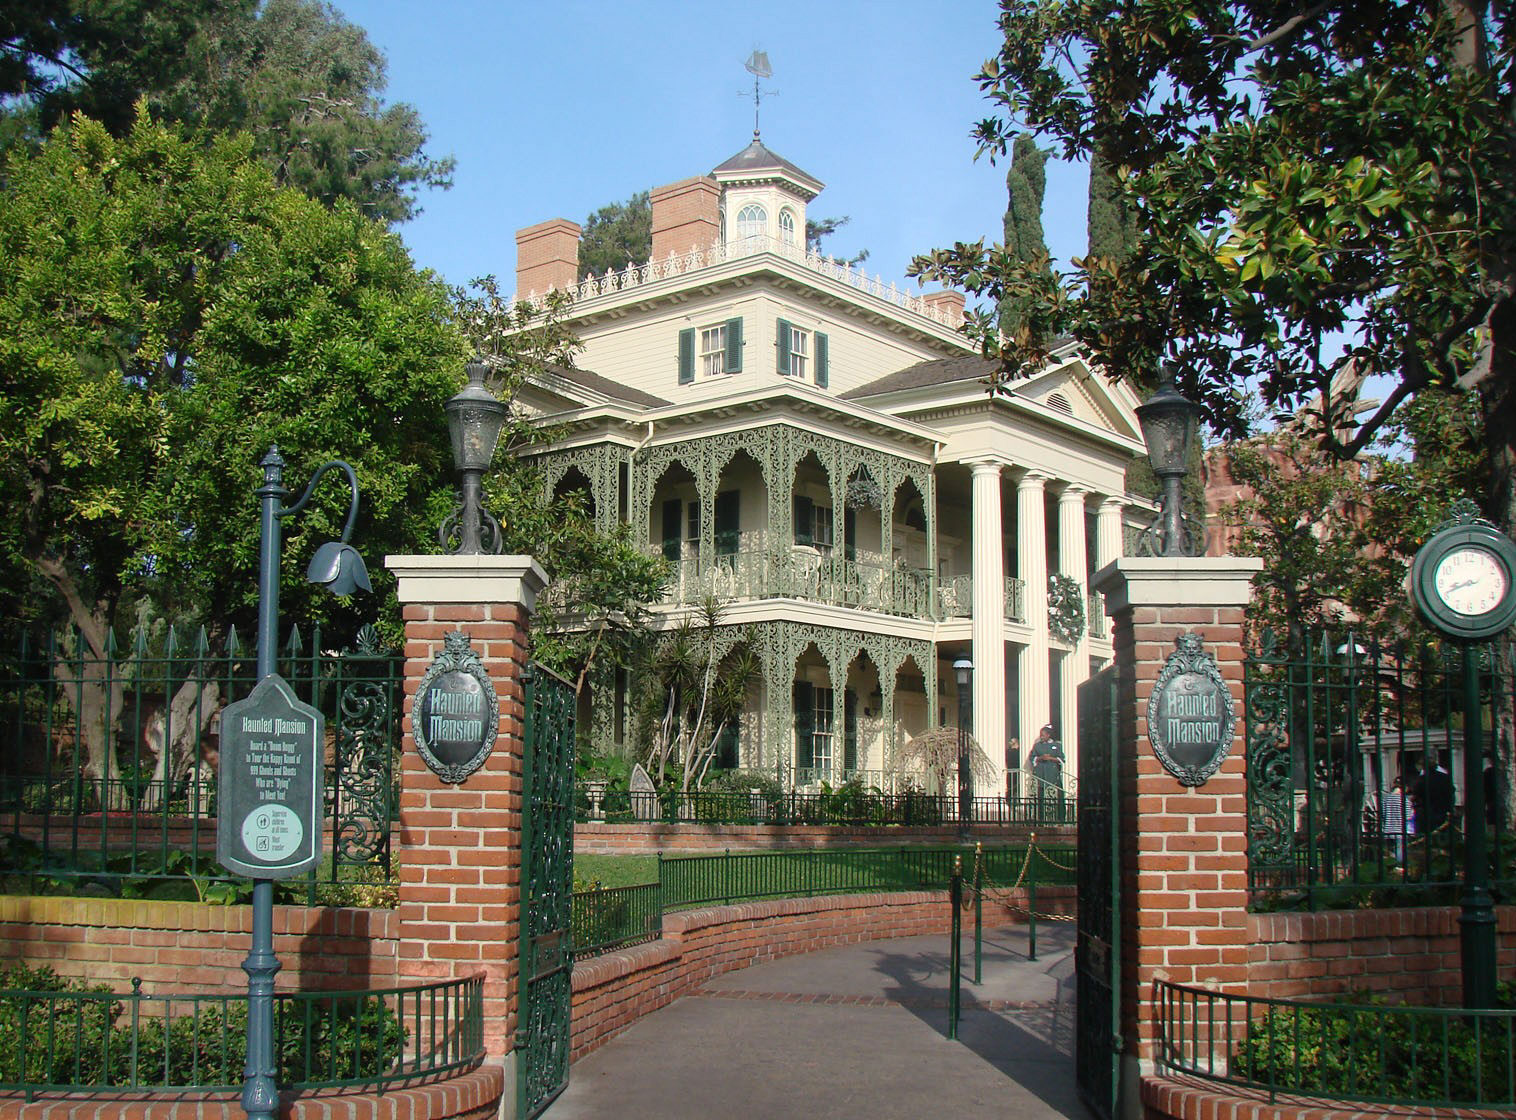 Exterior Mansion: 10 Of My Favorite Things To Do At Disneyland